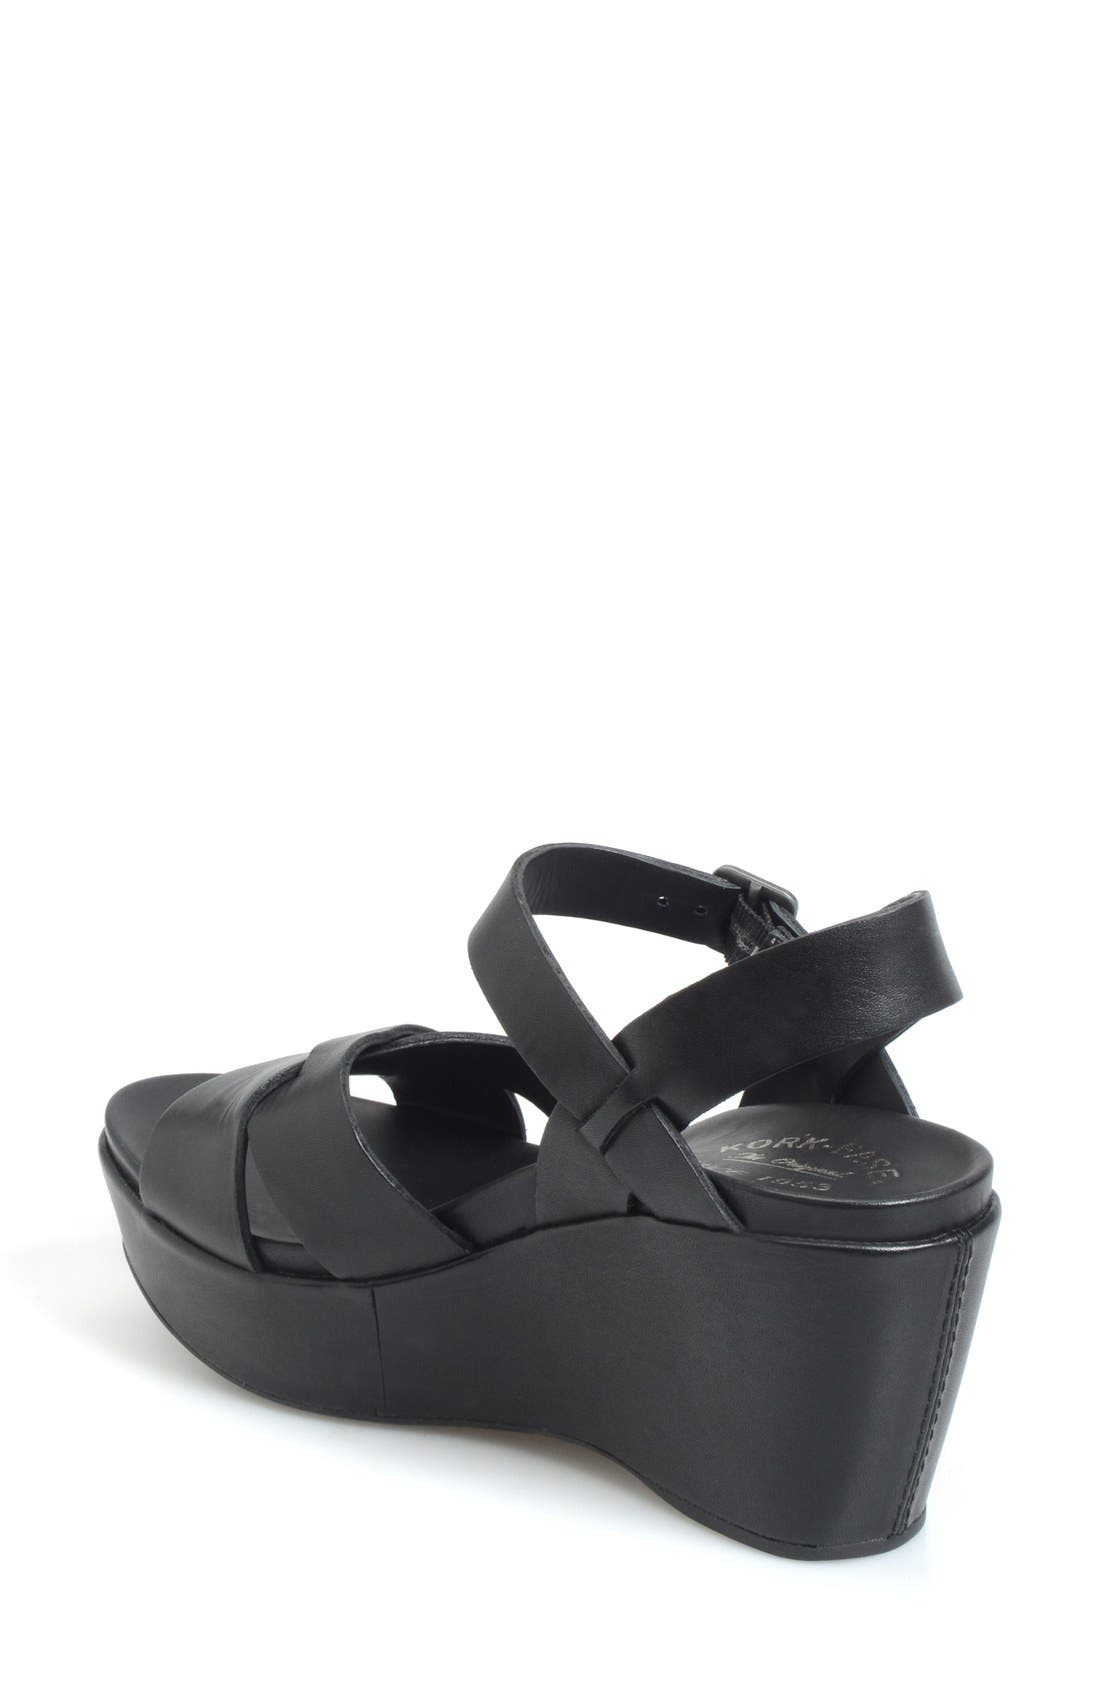 'Ava 2.0' Platform Wedge Sandal,                             Alternate thumbnail 6, color,                             BLACK